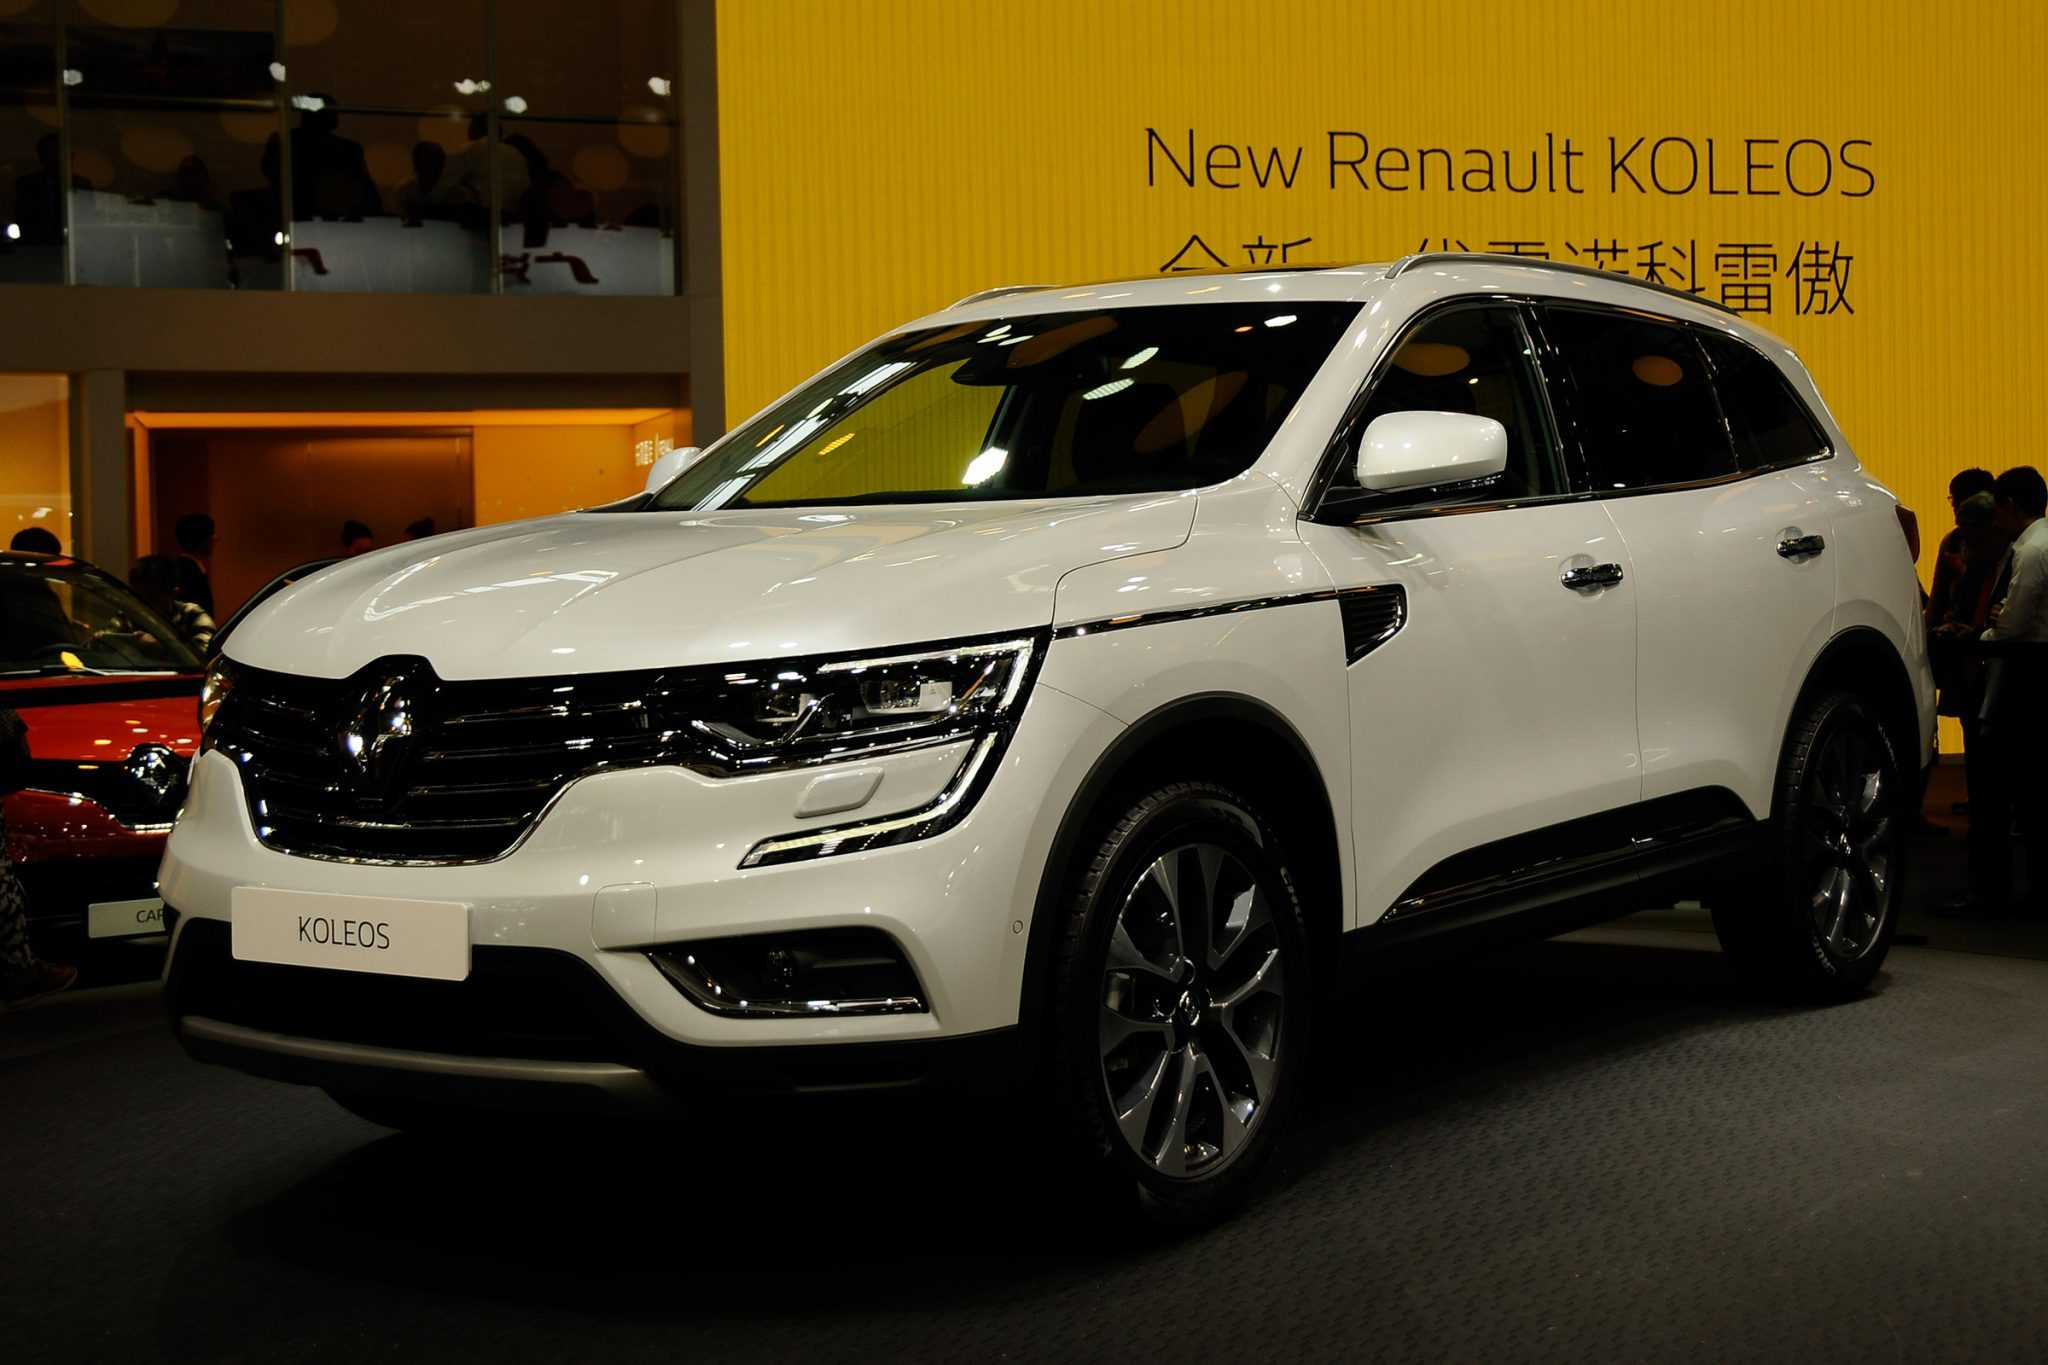 Renault Koleos SUV Officially Launched In Beijing